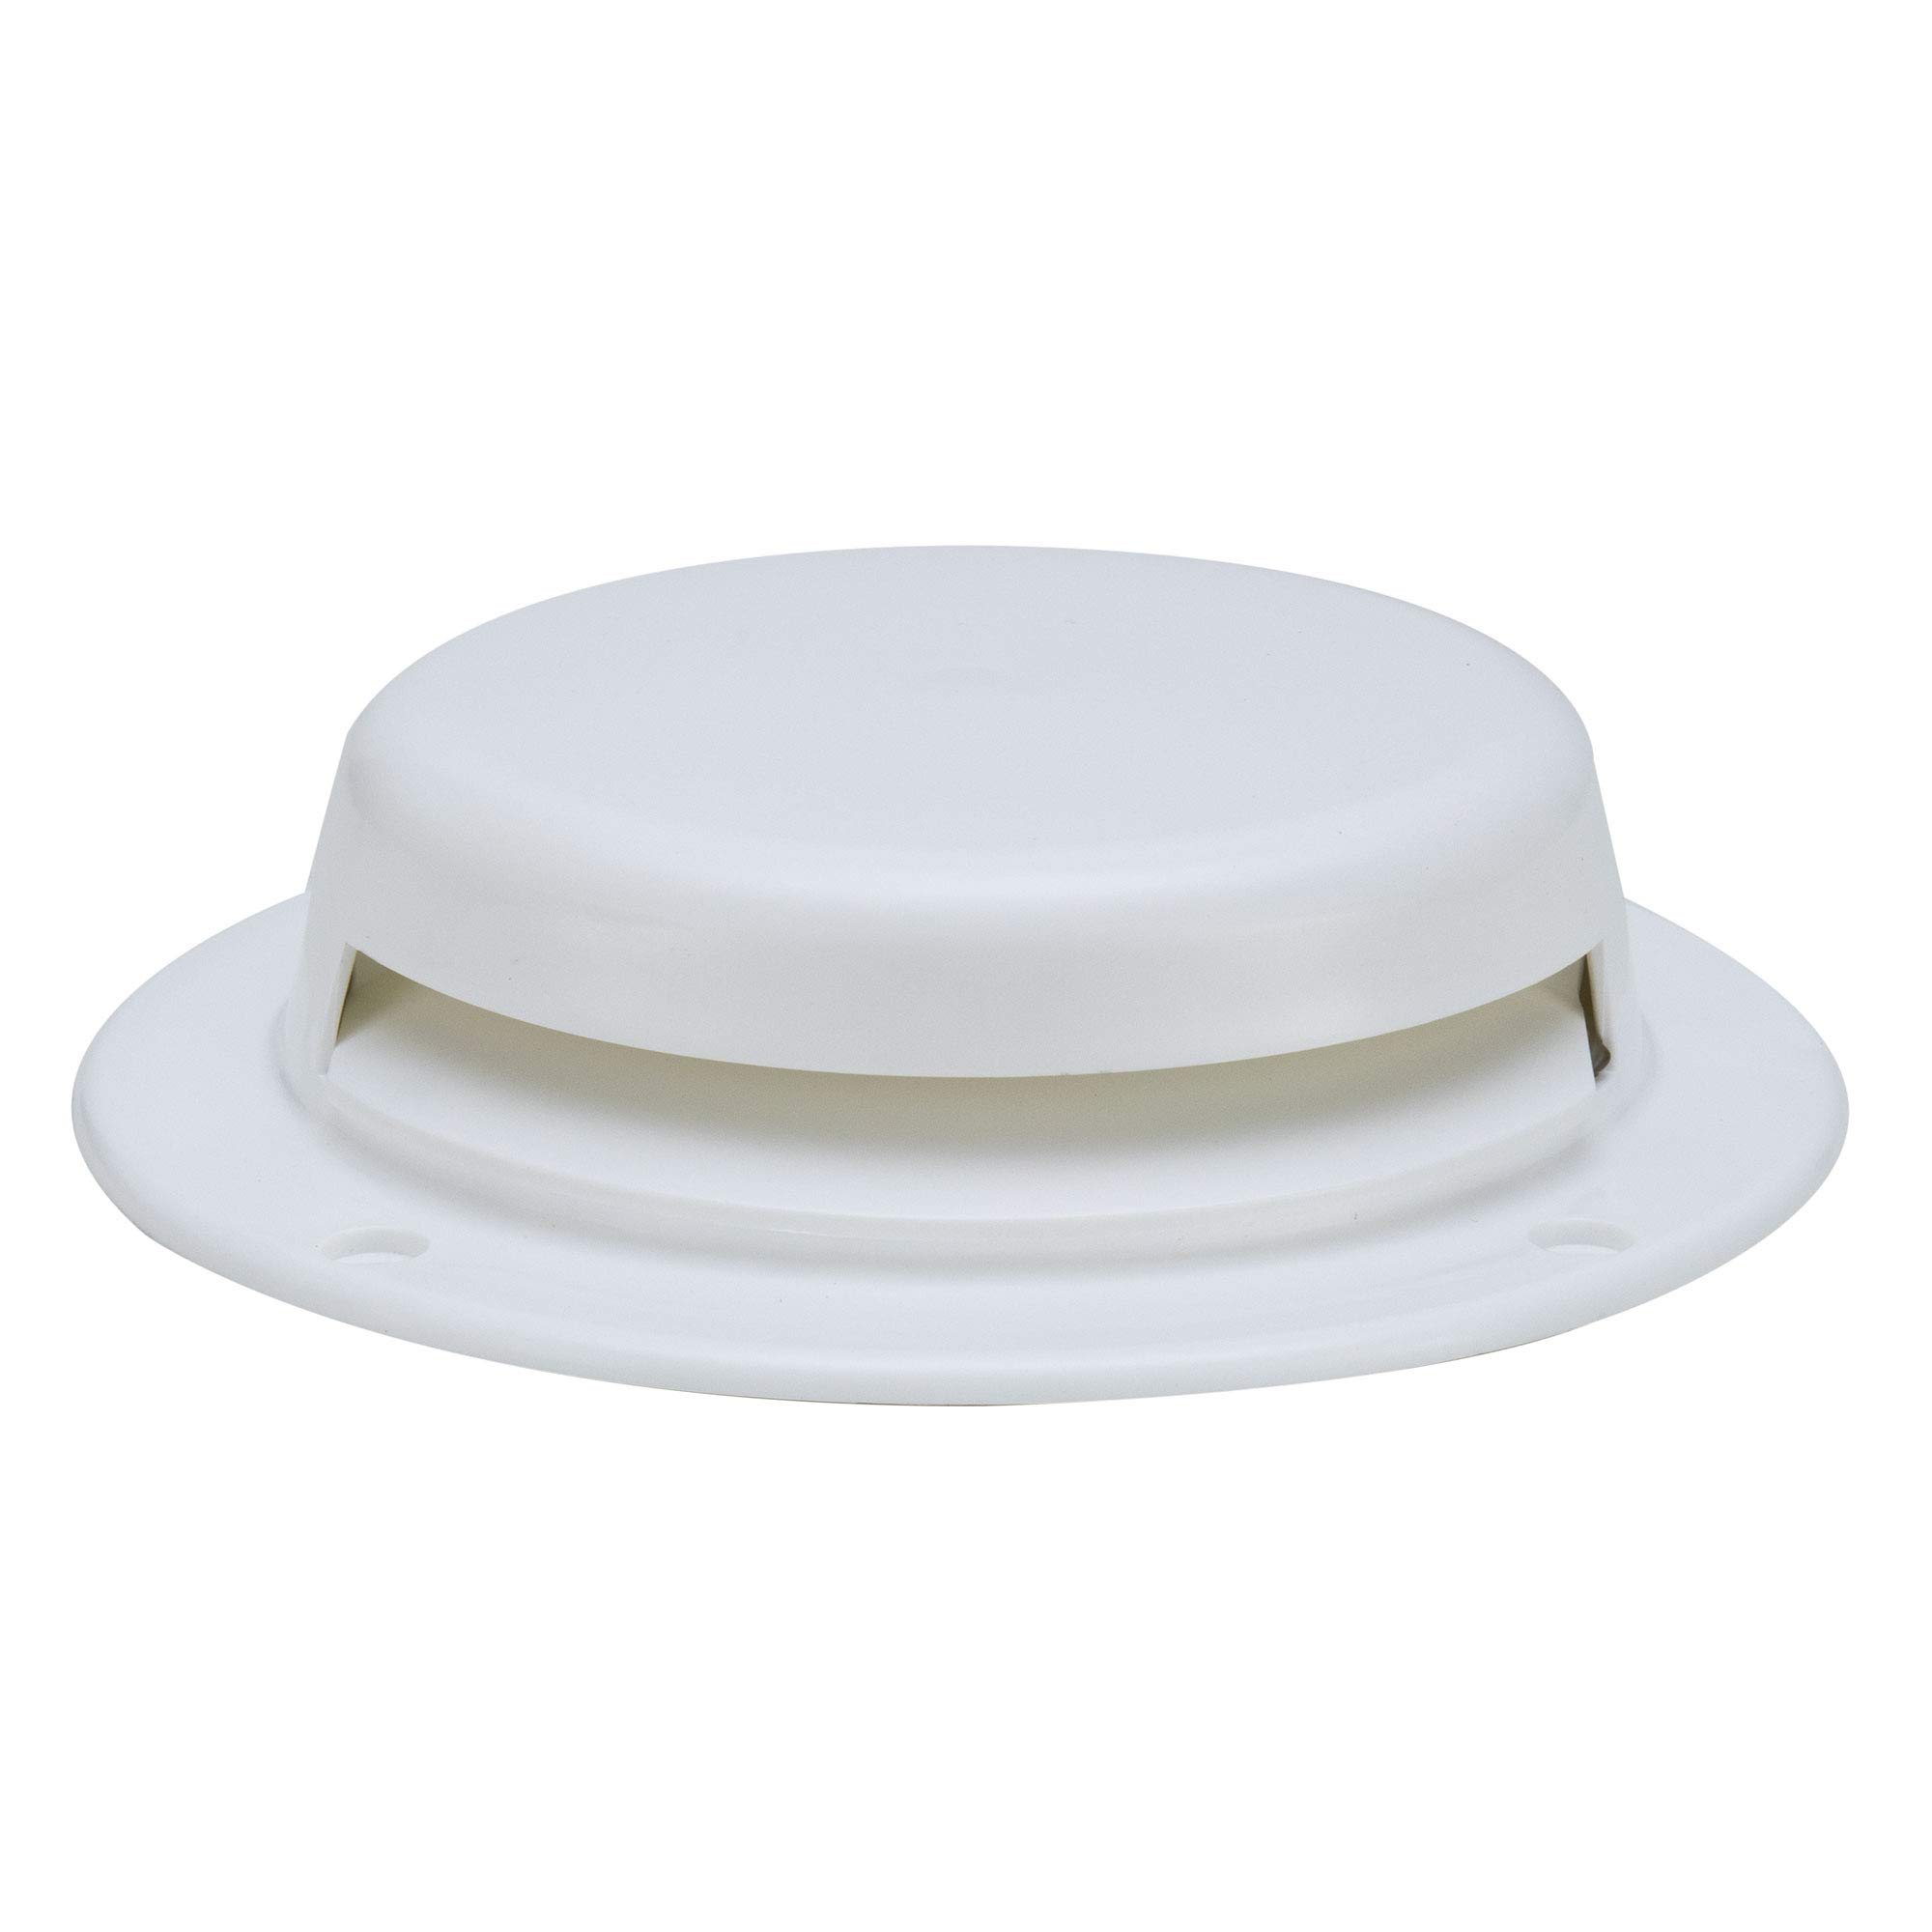 RecPro New RV Attic Mushroom Ceiling Roof Vent by RecPro